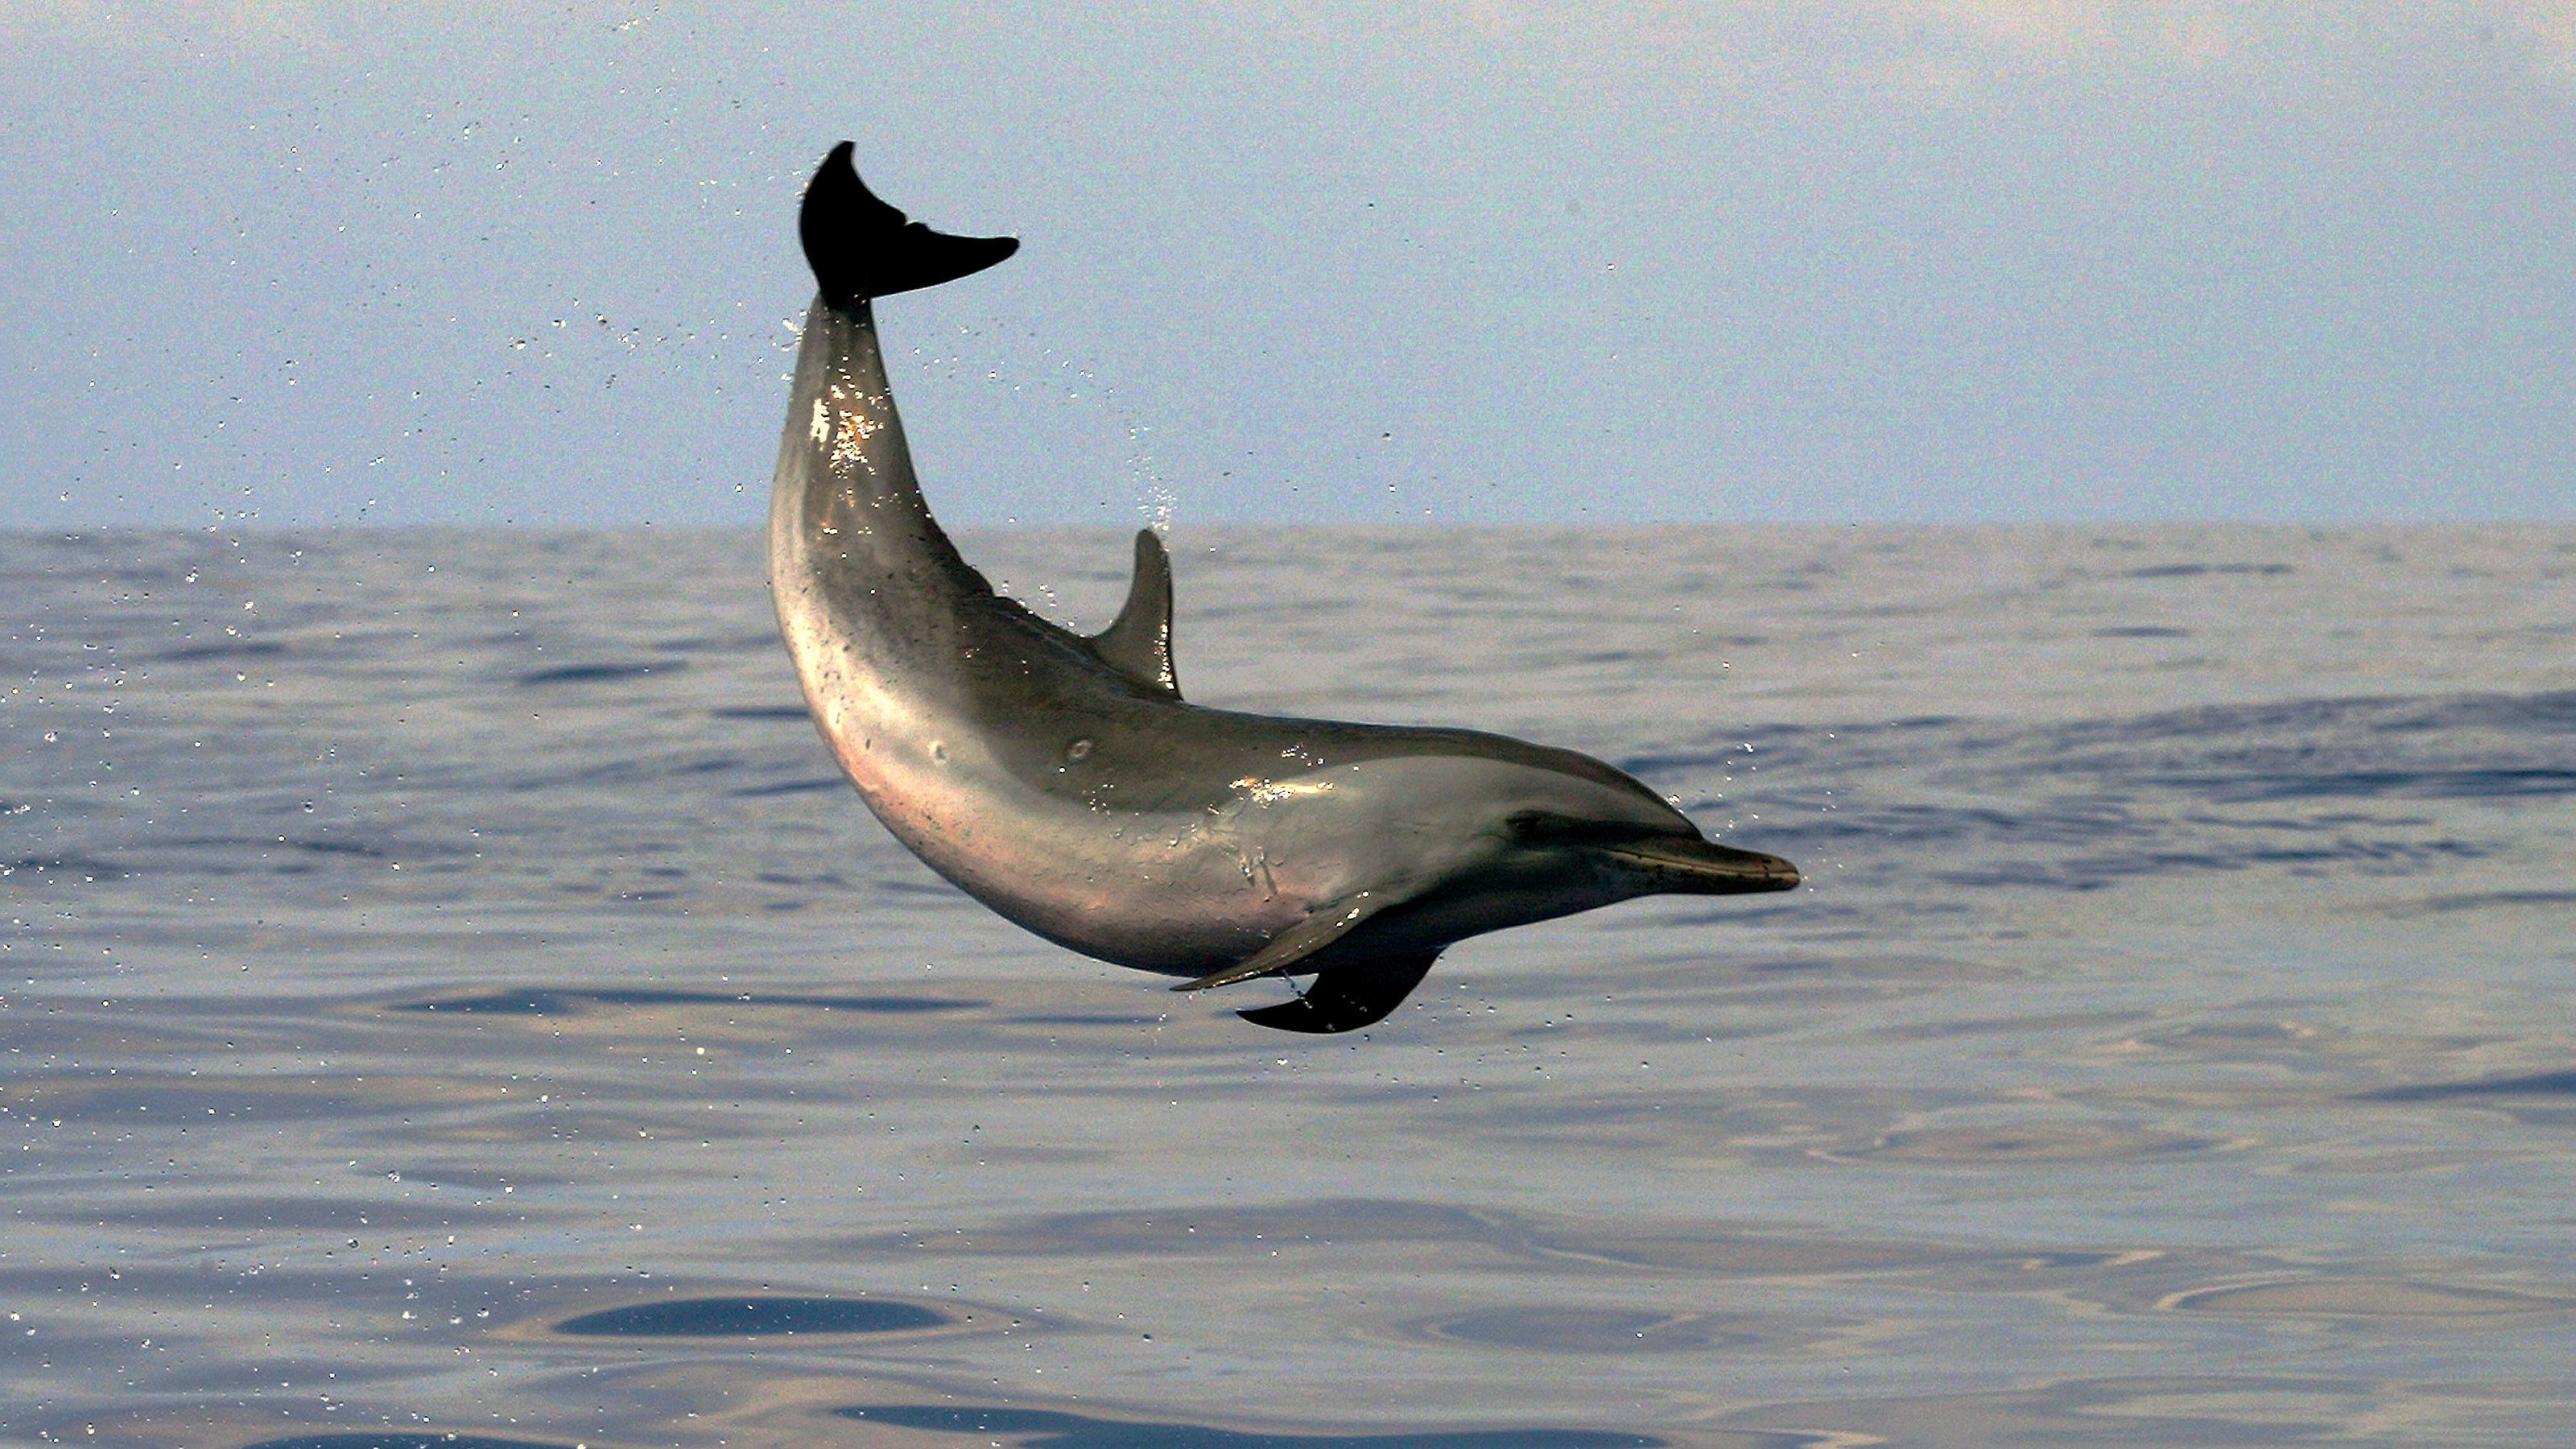 Dolphin in the air in the pacific ocean